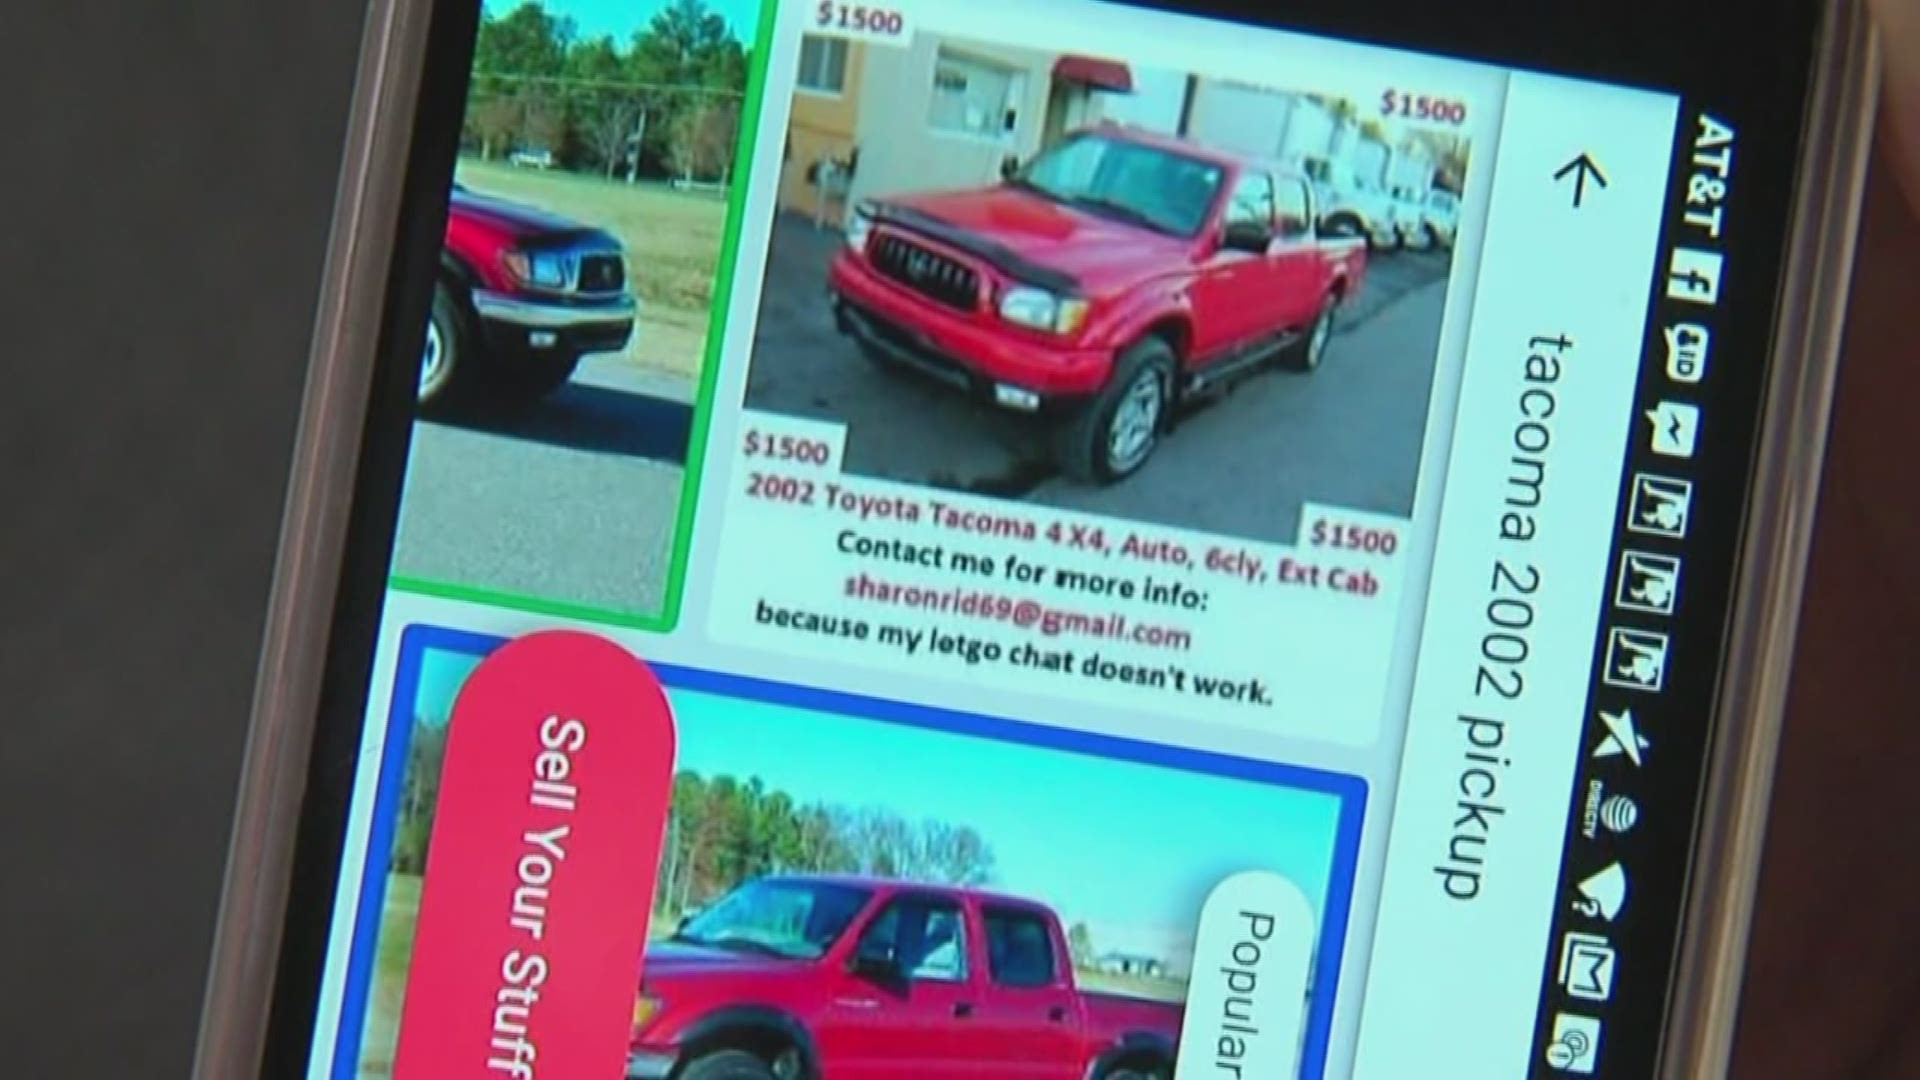 Buyer Beware: Craigslist car scam spreading to more apps ...